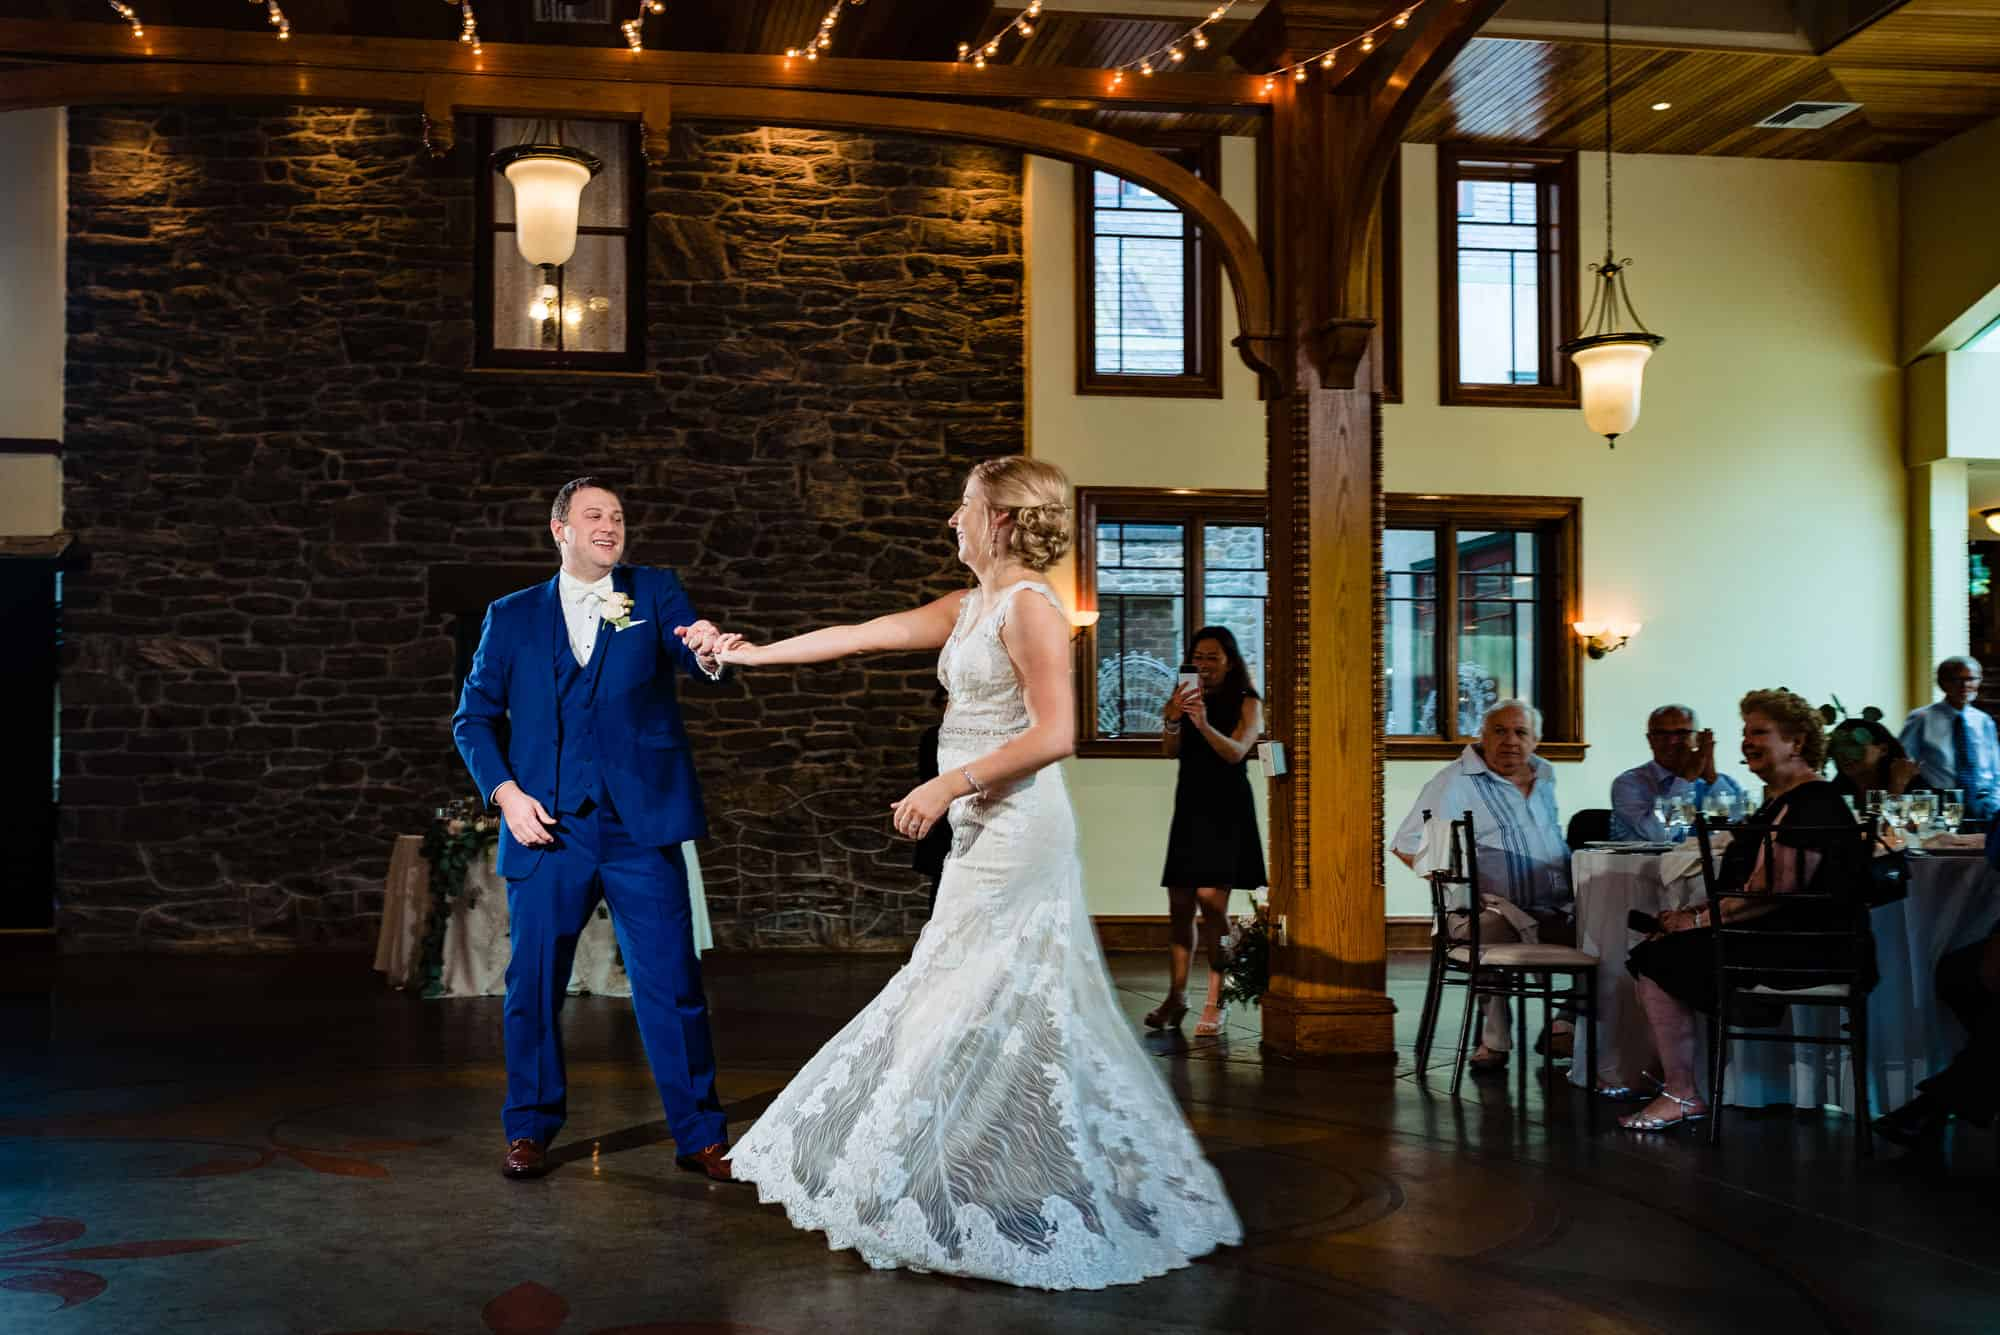 wedding reception, groom twirling bride during first dance in front of guests